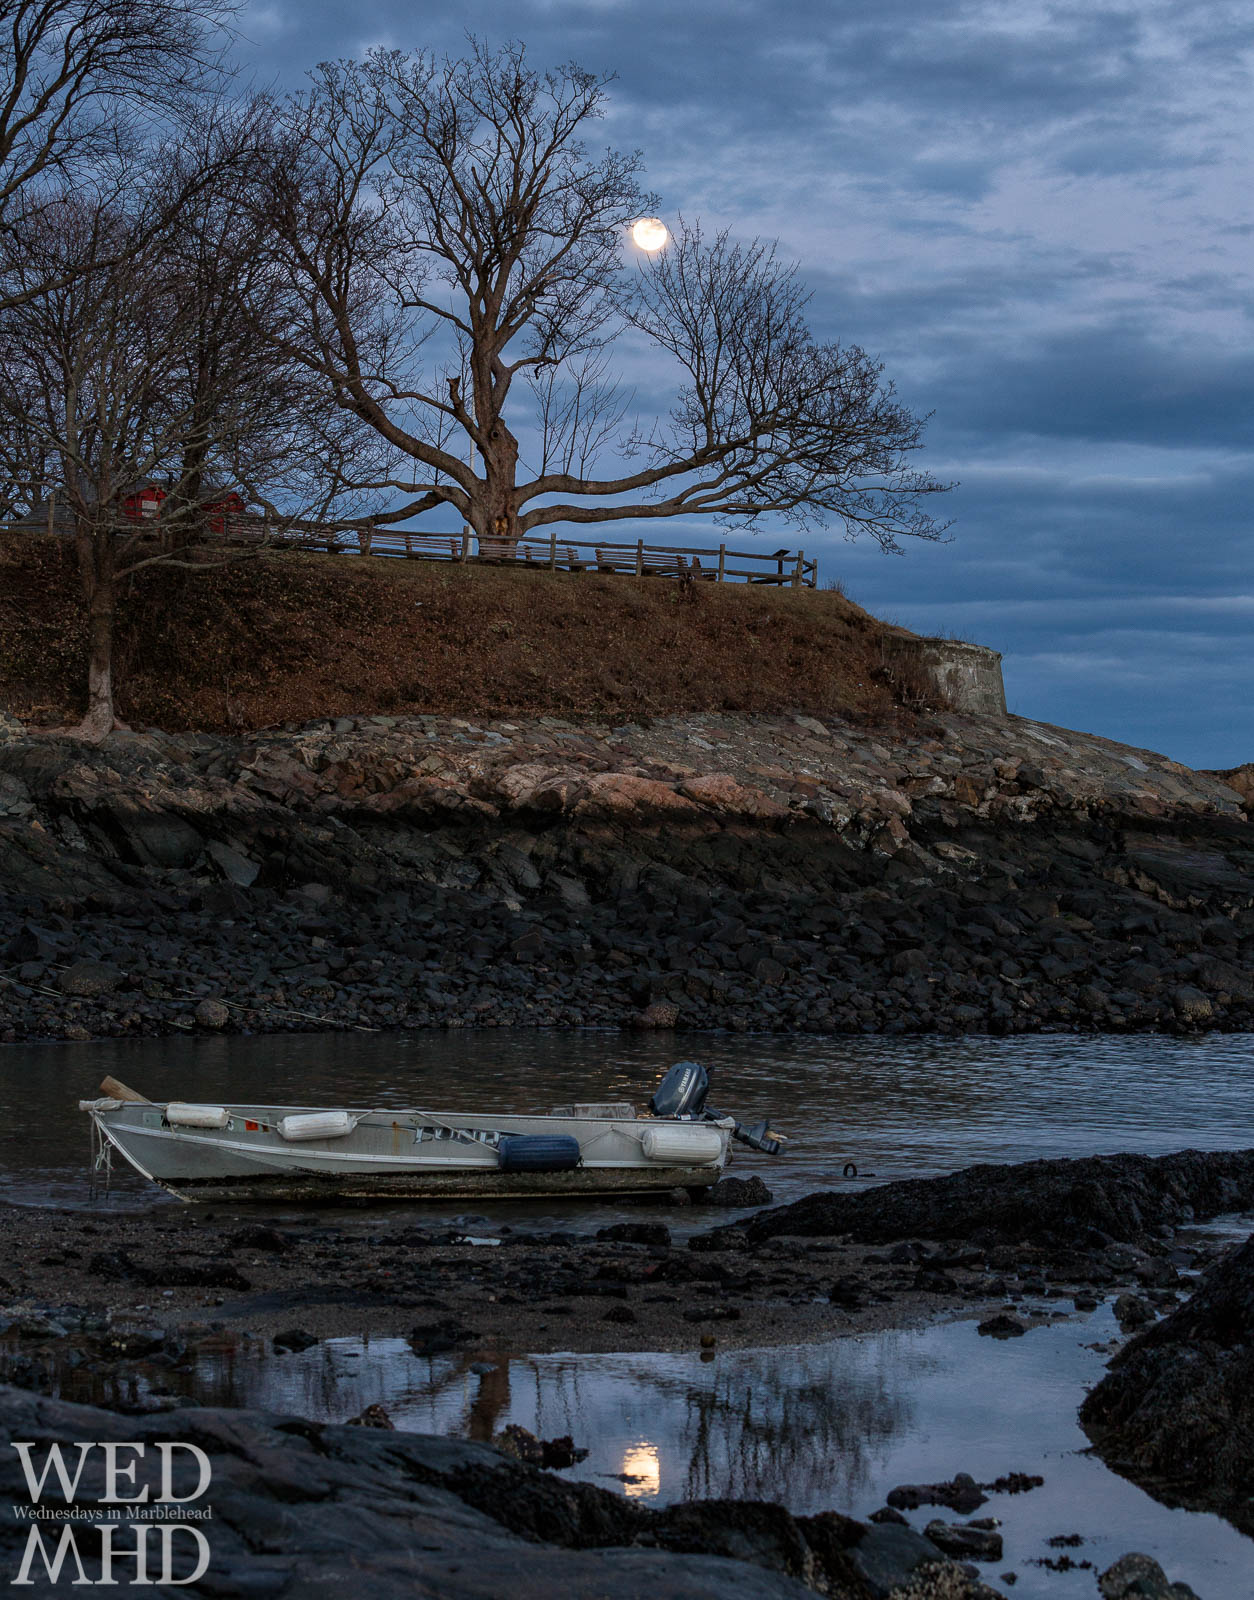 A nearly full moon behind the great tree at Fort Sewall casts a moonlit refleciton at Fort Beach